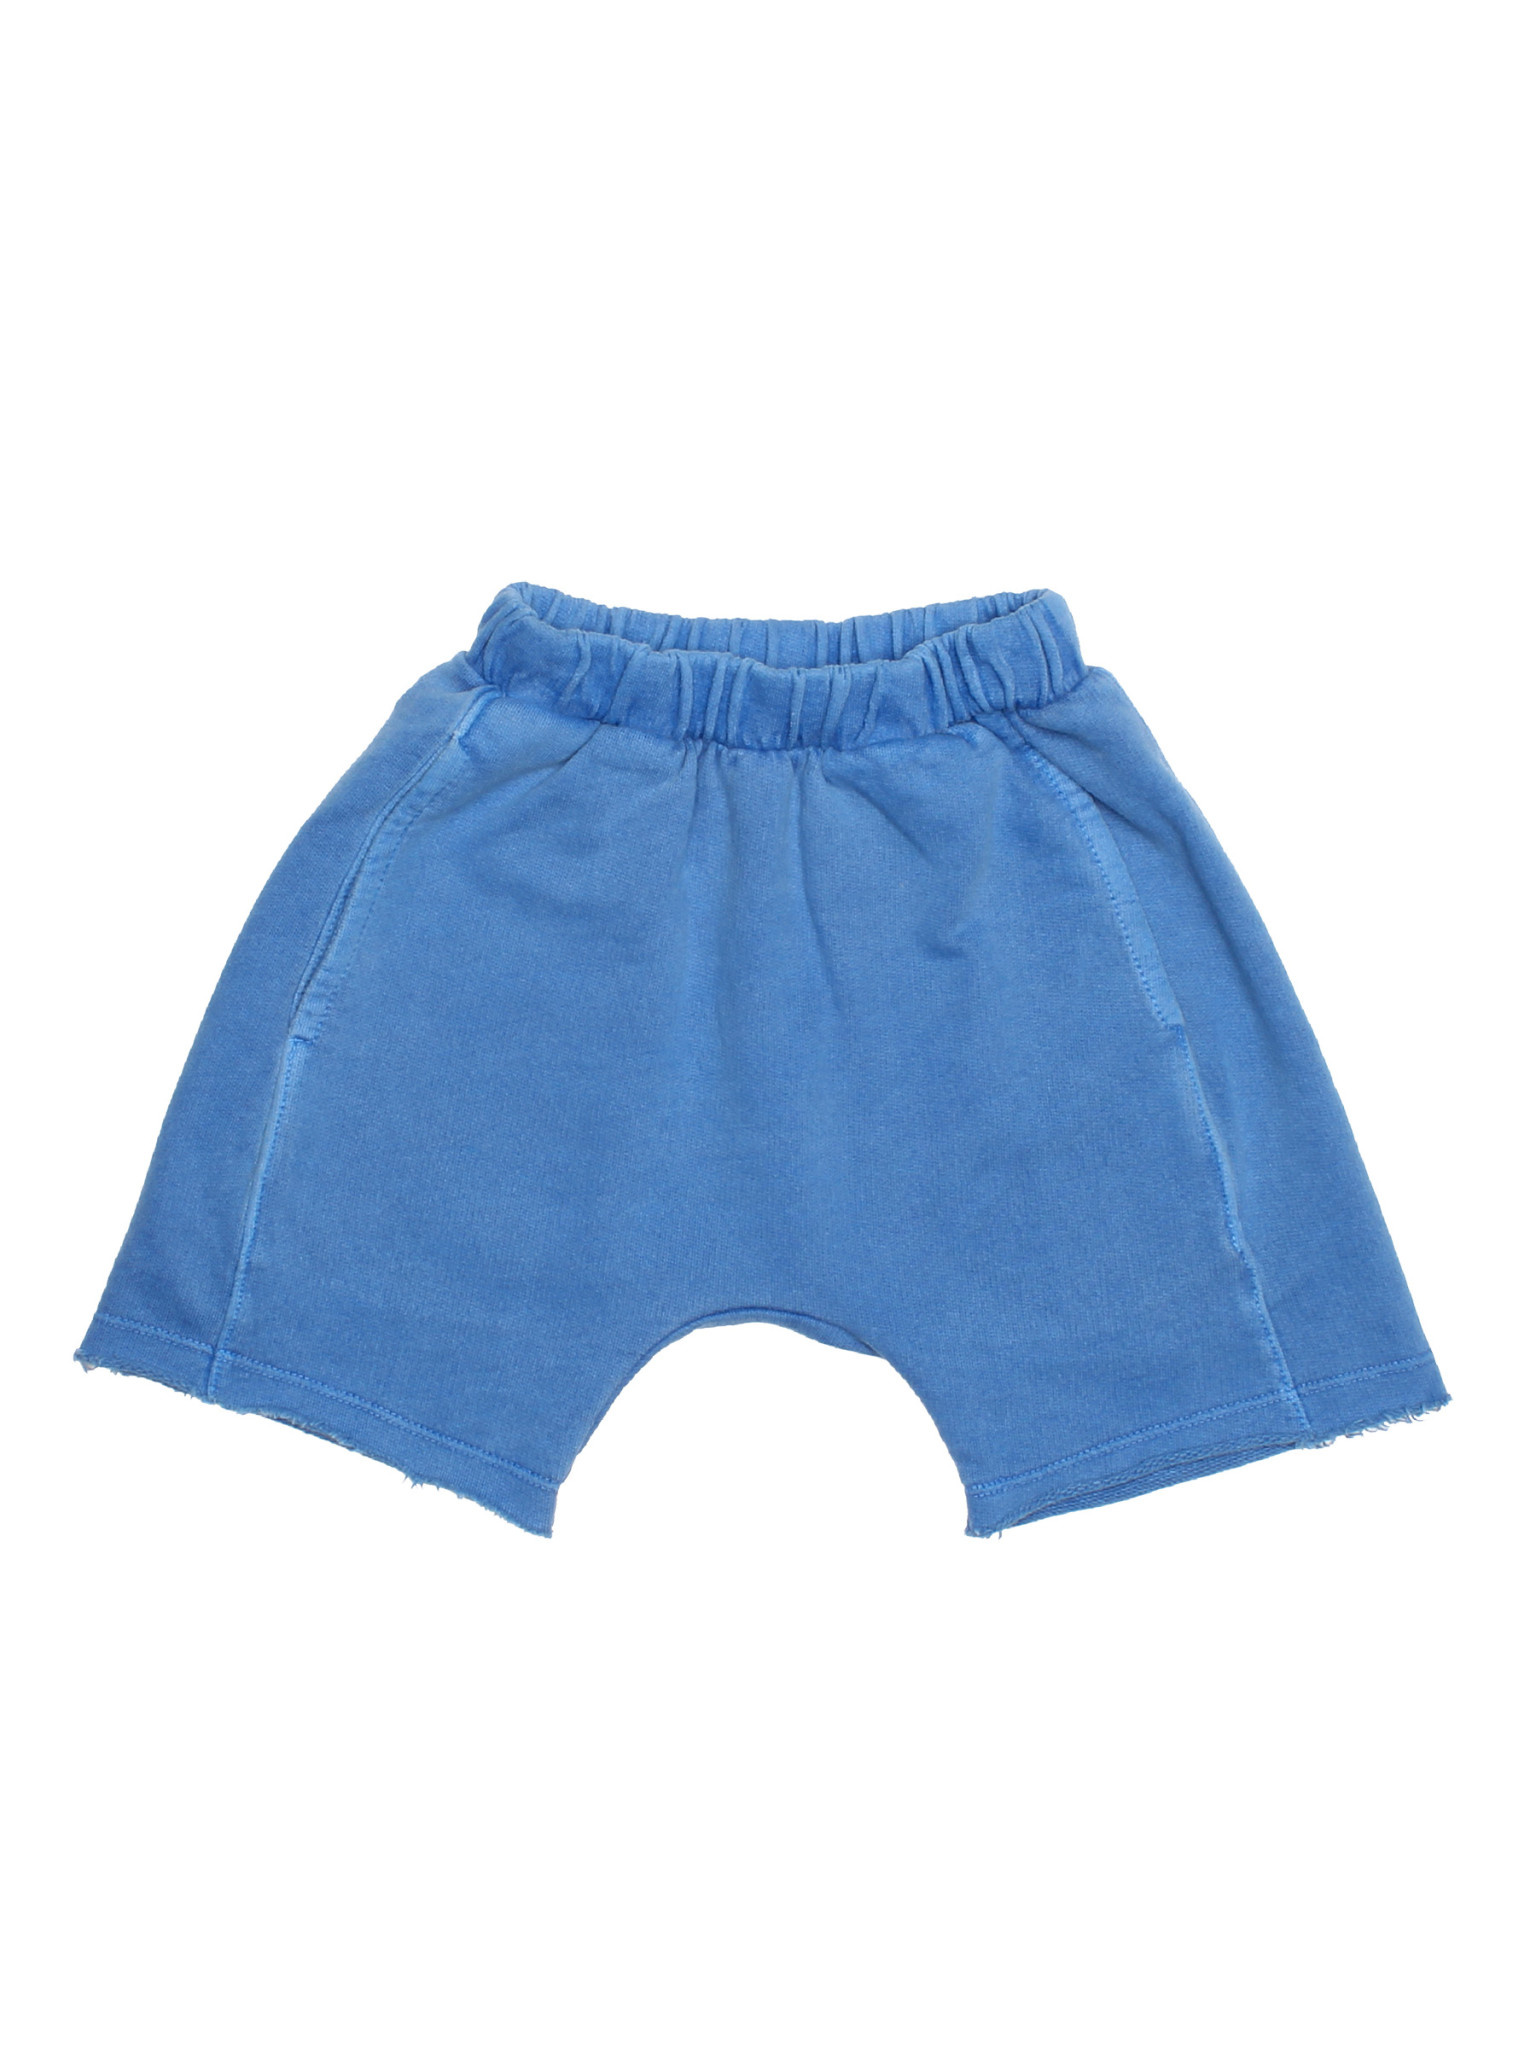 JOAH LOVE Nash Vintage Shorts